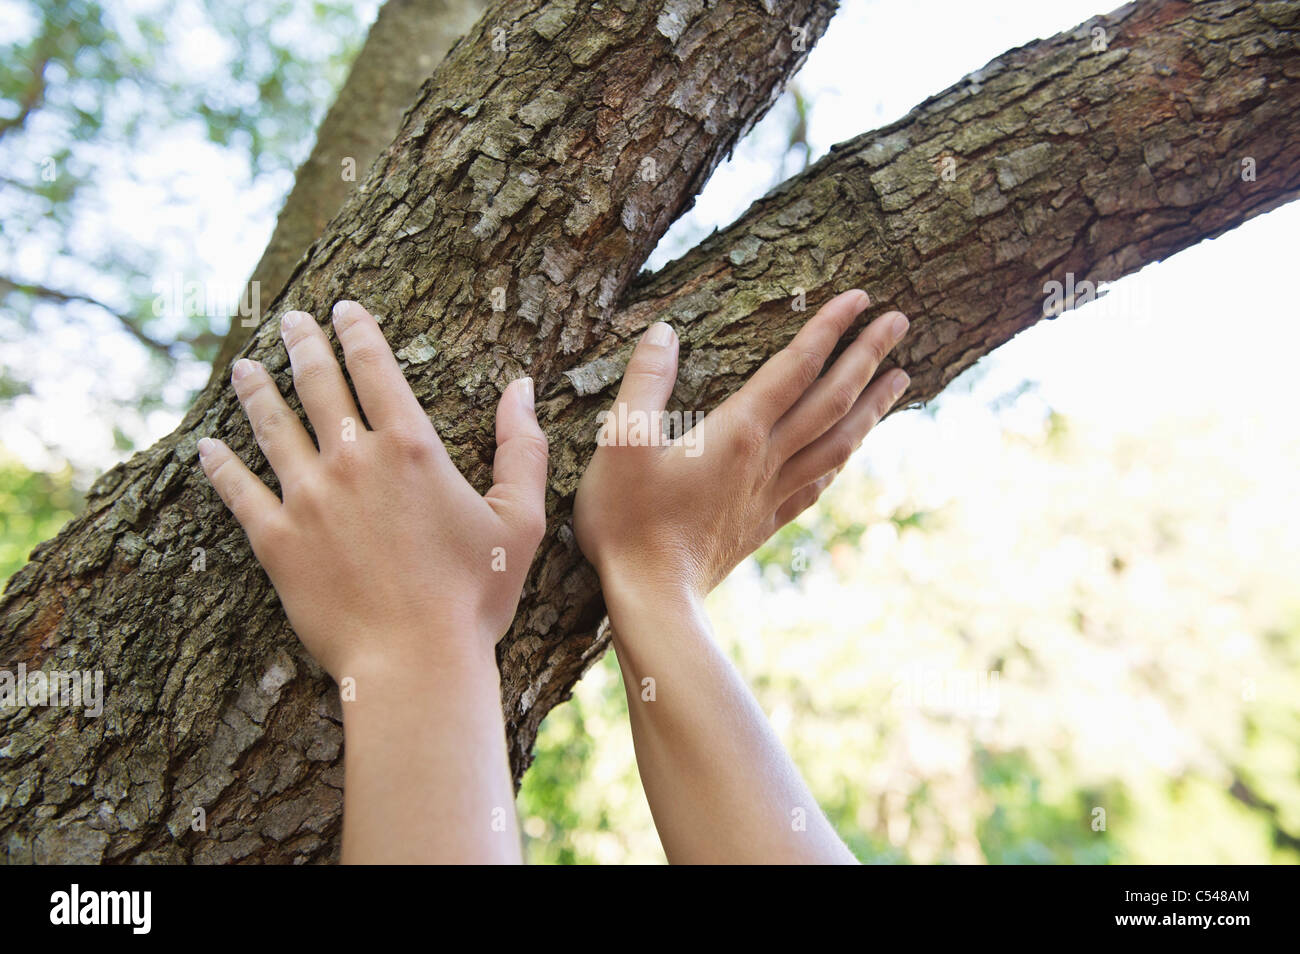 Close-up of a human hand touching tree branch - Stock Image